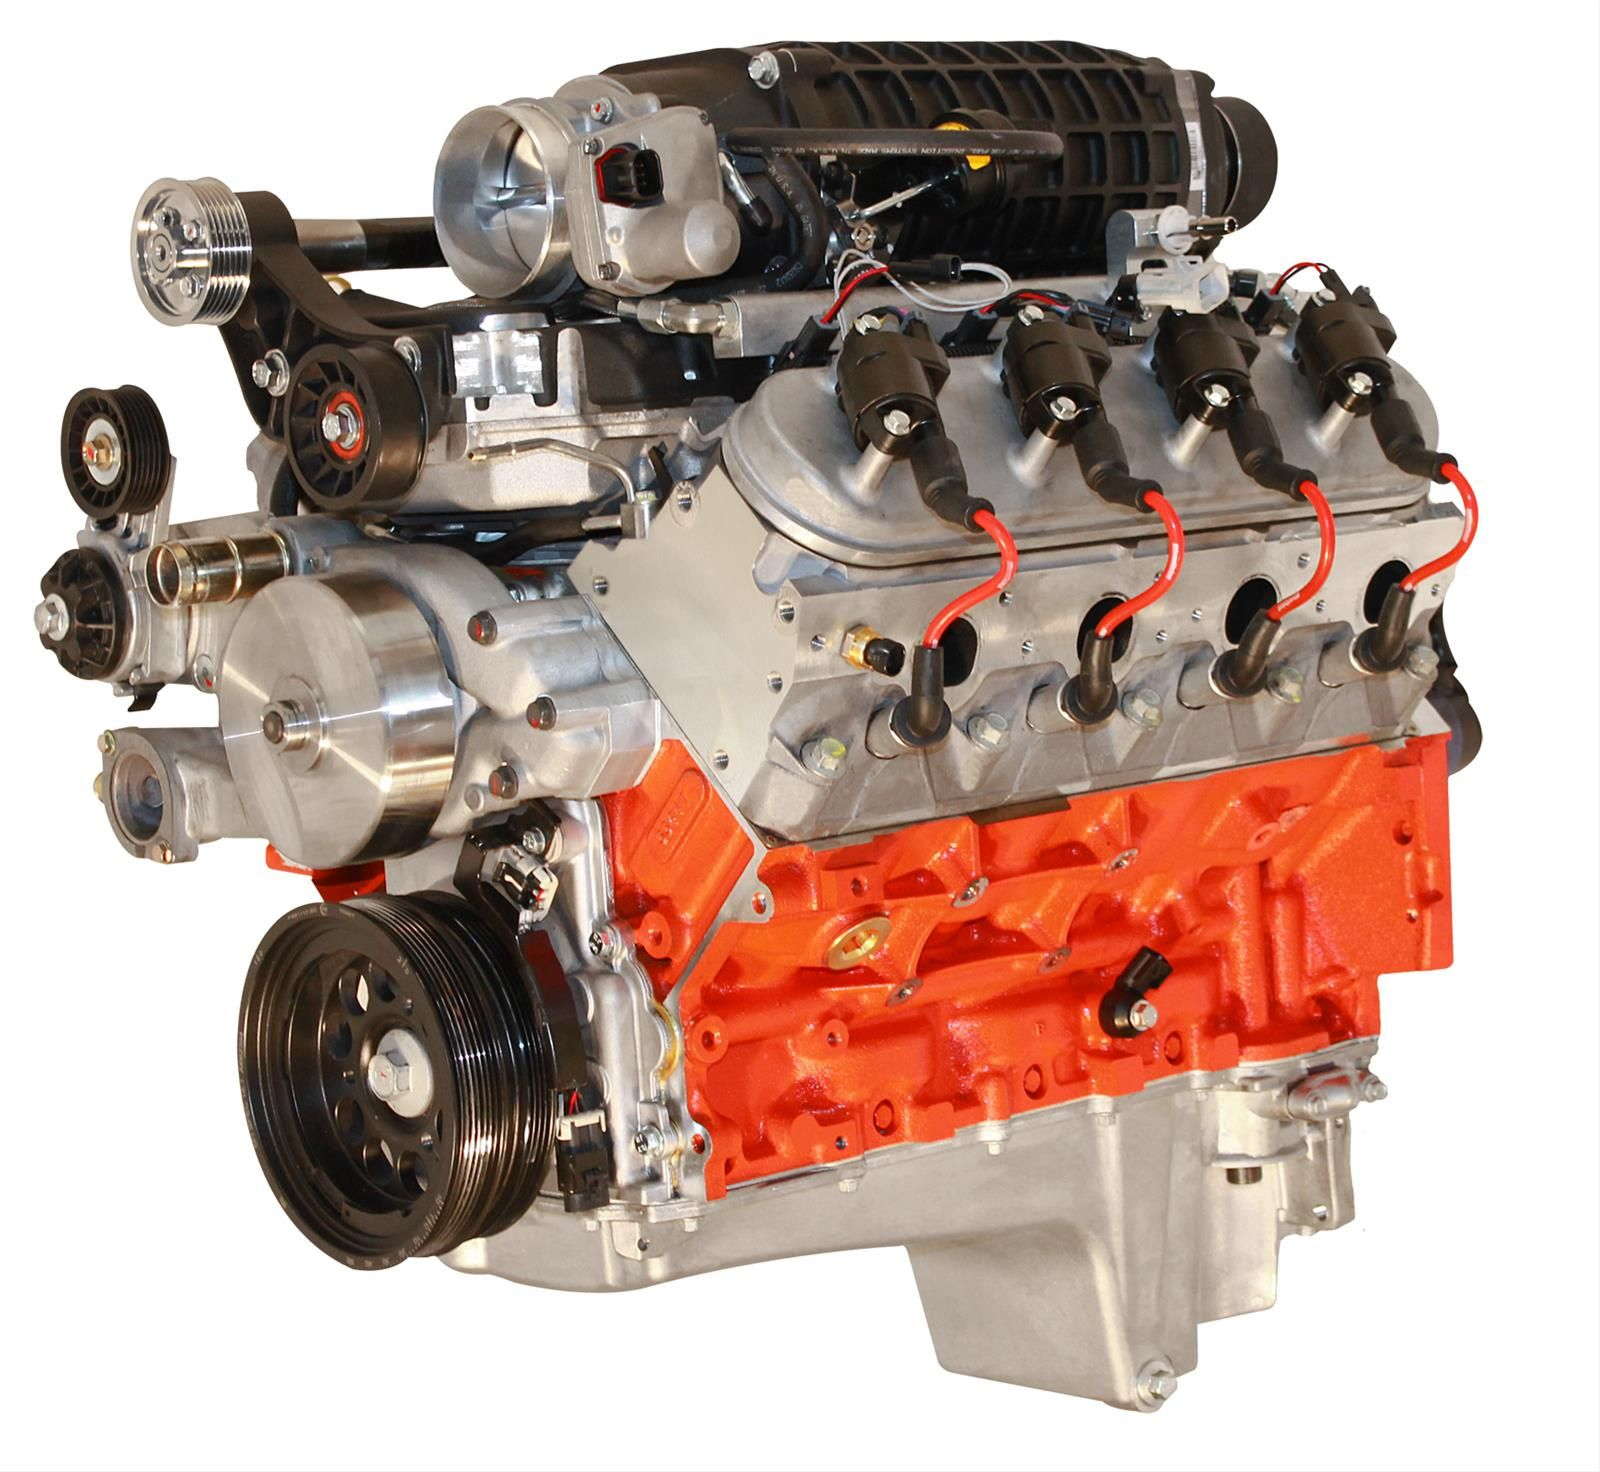 Blueprint engines pro series chevy ls 427 cid 750 hp supercharged engine malvernweather Image collections